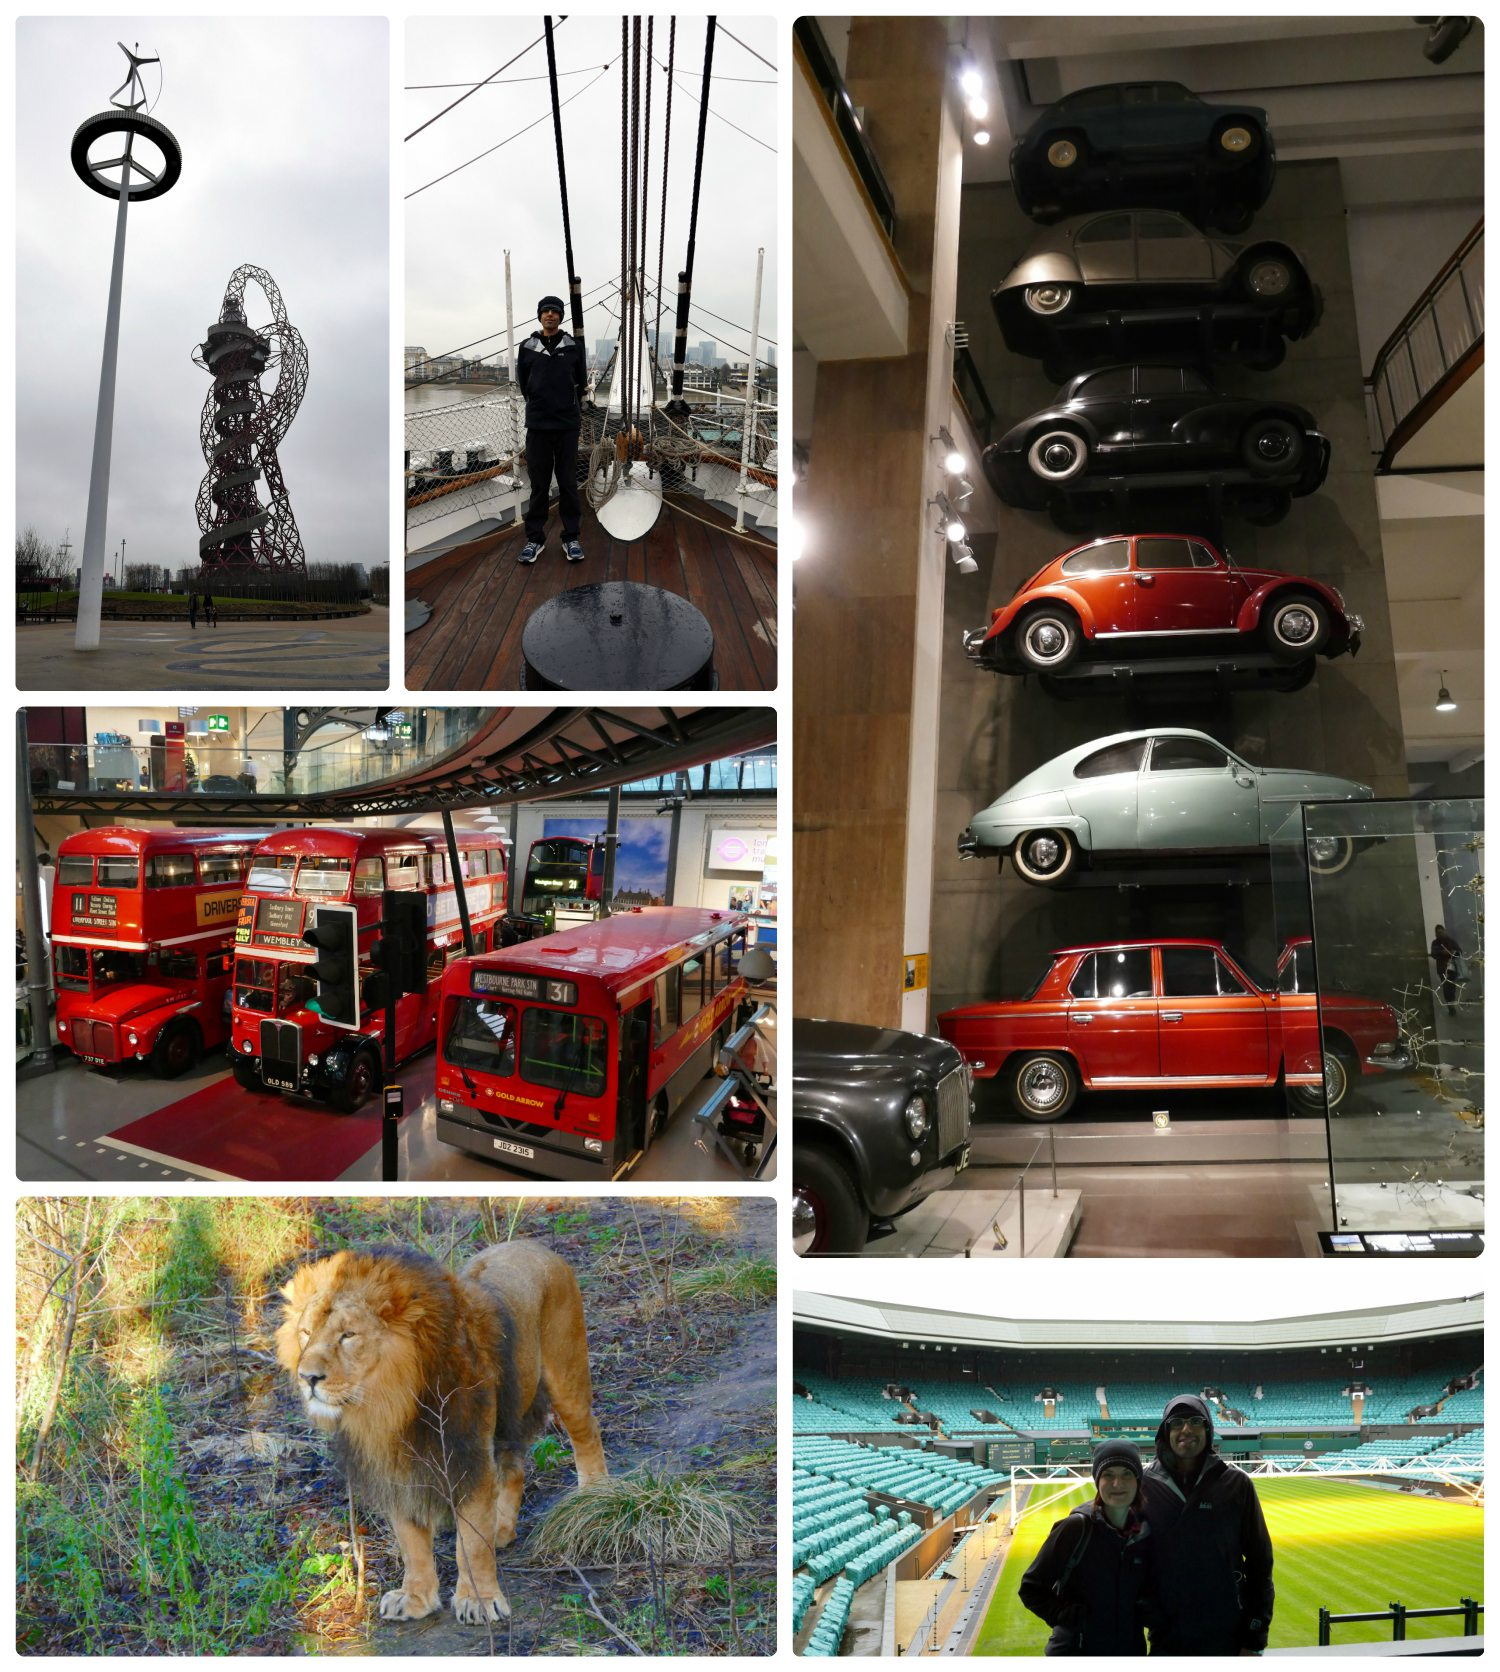 Sightseeing in London. Top, left to right: ArcelorMittal Orbit - London Olympic Park, Cutty Sark, car display at London Science Museum, Transport Museum, Lion at London Zoo, Wimbledon.